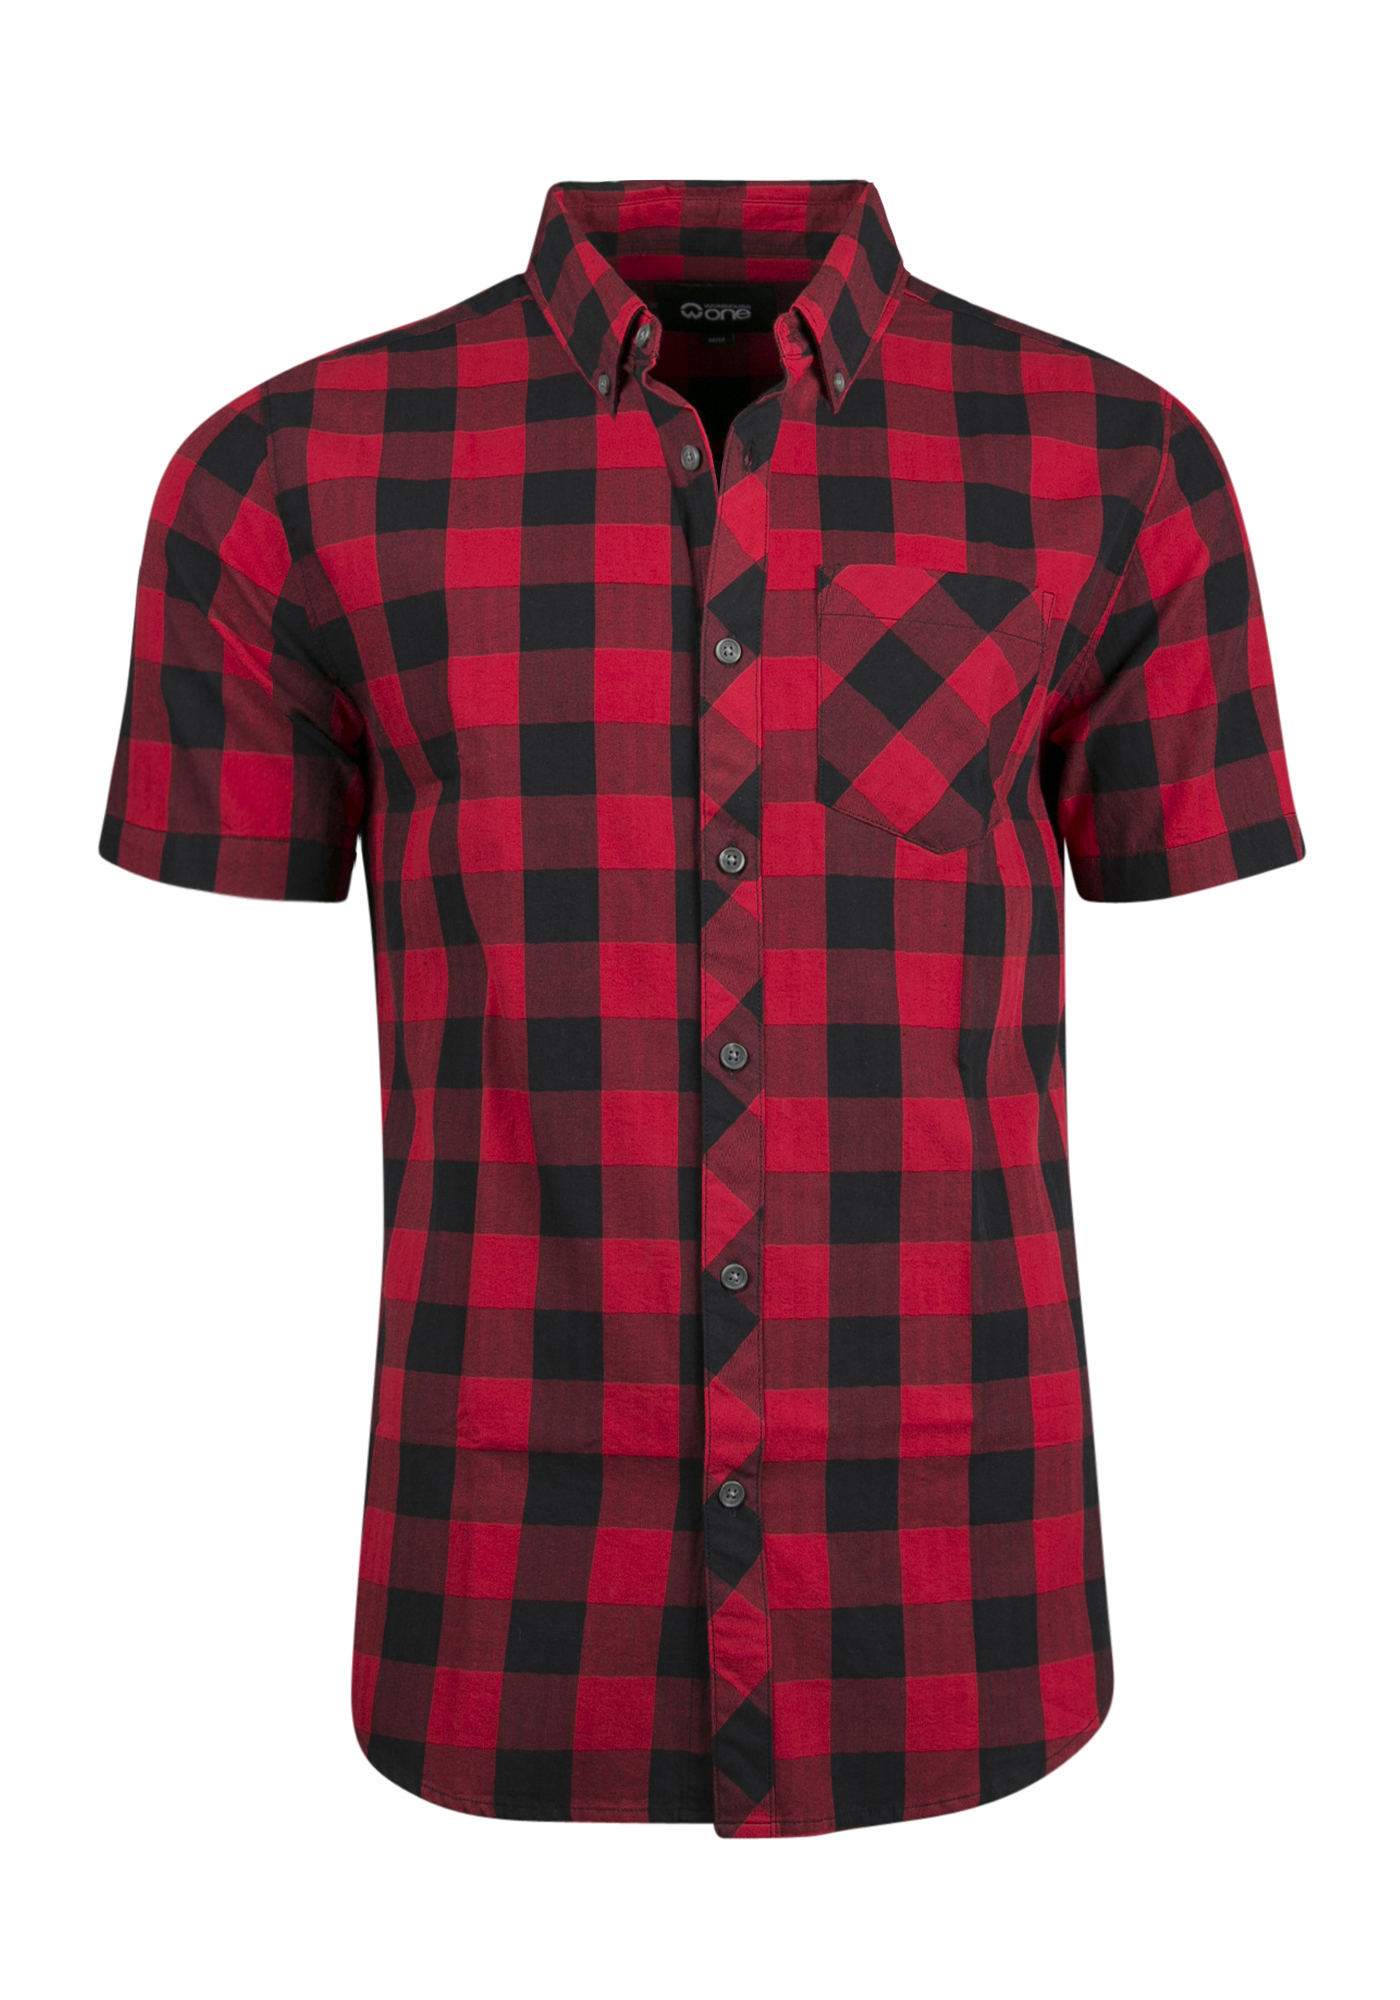 d2d18d7d Men's Buffalo Plaid Shirt | Warehouse One